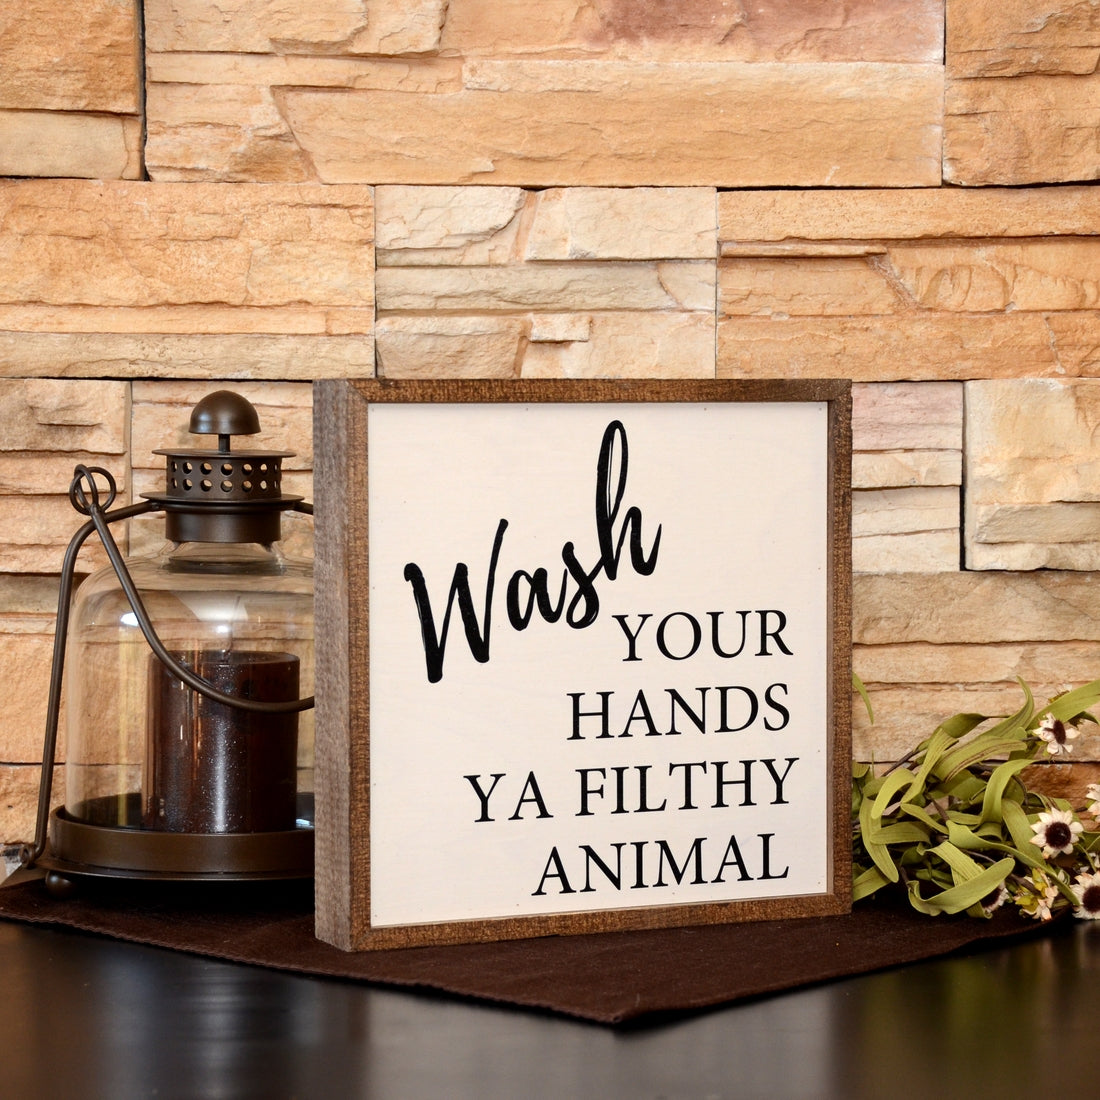 10X10 Wash Your Hands Ya Filthy Animal Wooden Sign